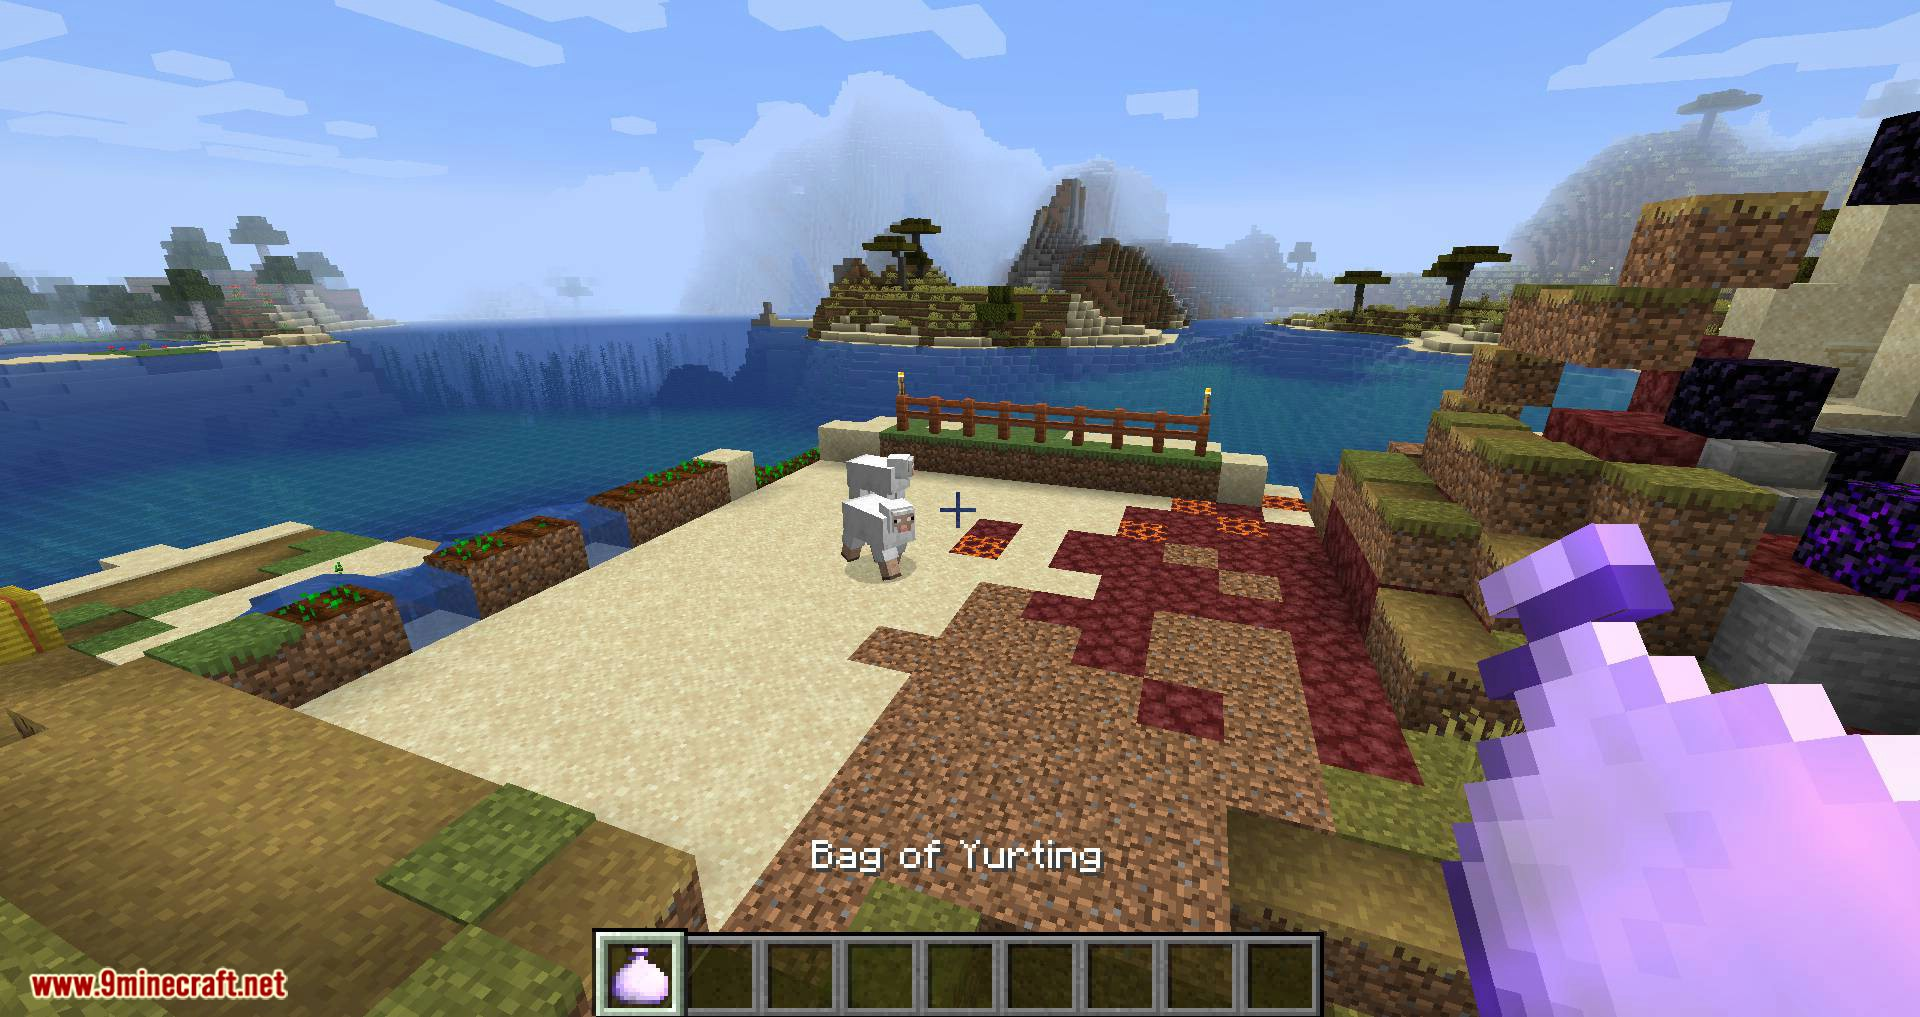 Bag of Yurting mod for minecraft 12